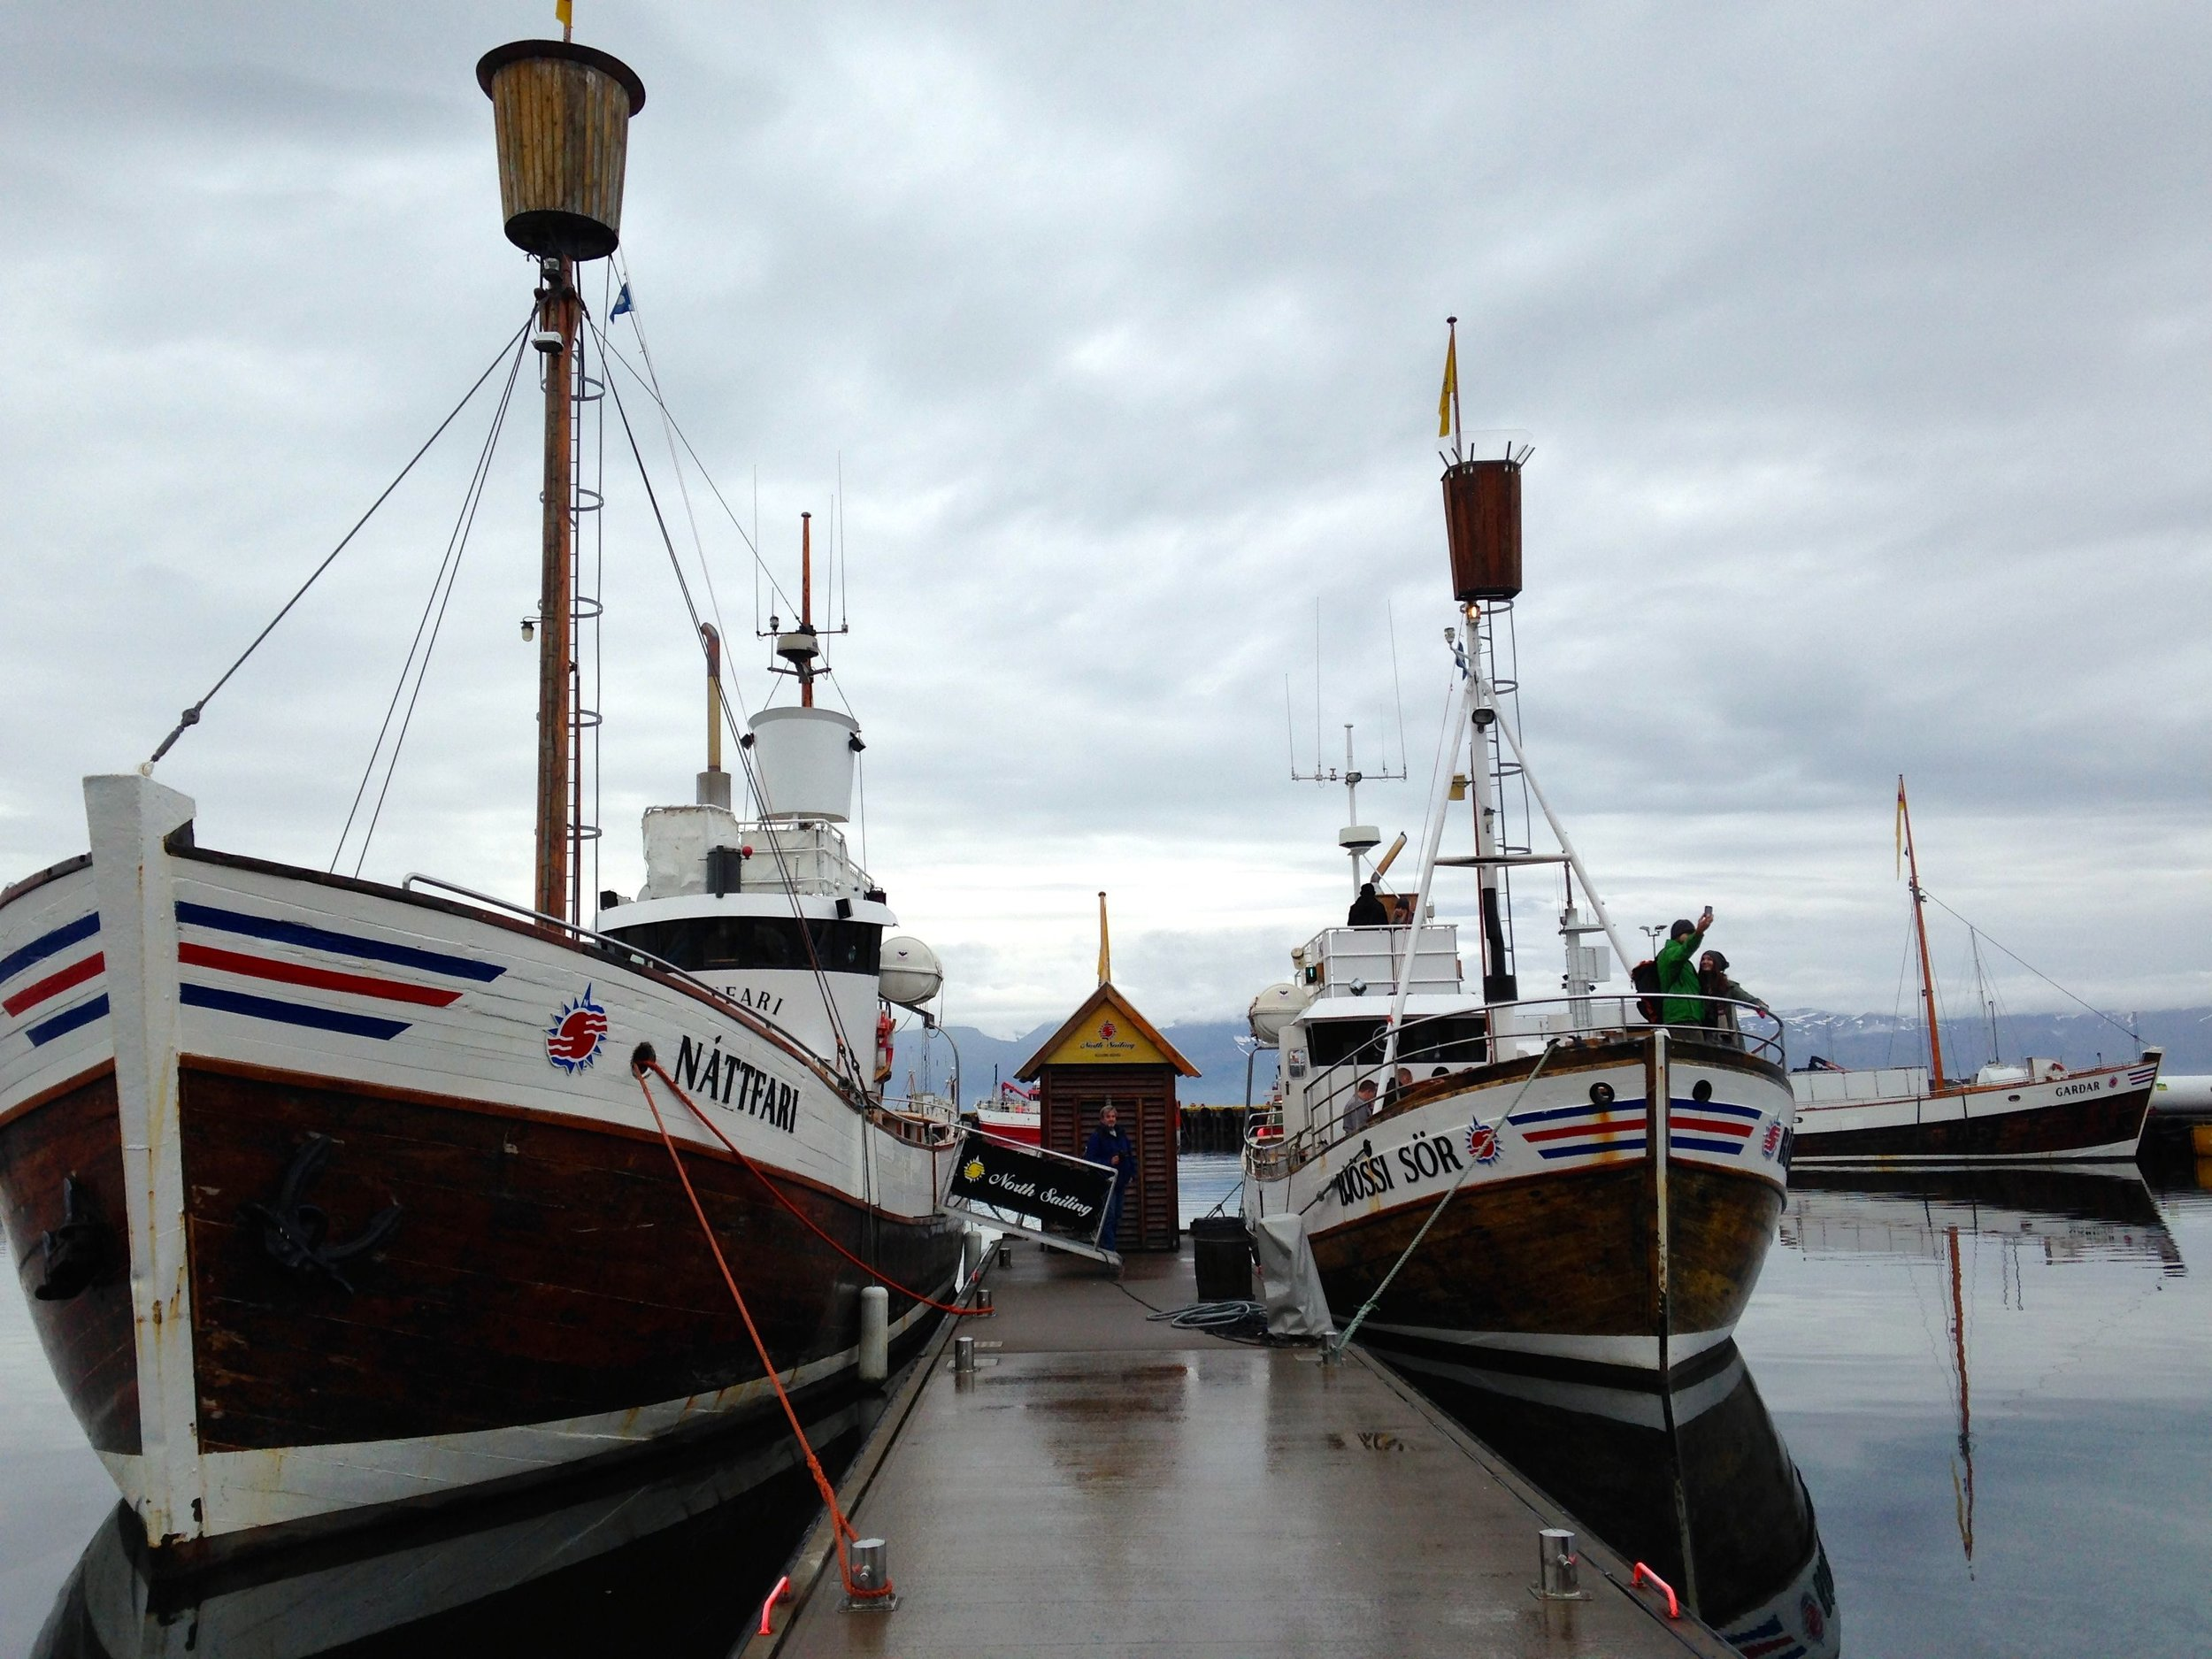 Husavik, Iceland. We went whale-watching in the boat on the right.